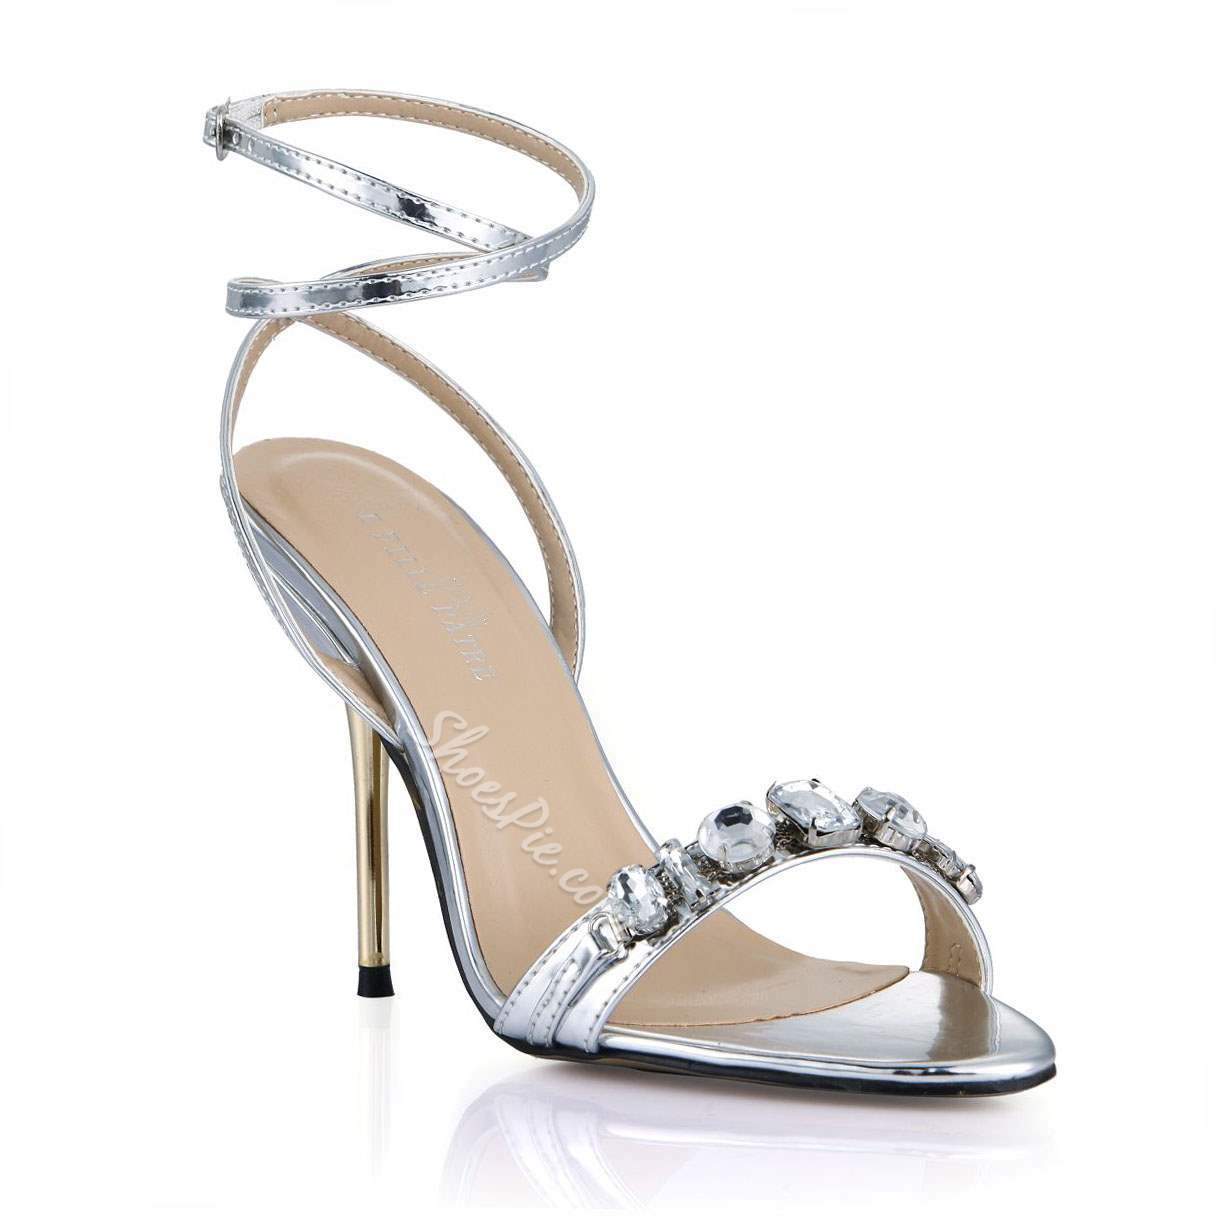 Shoespie Rhinestone Ankle Wrap Dress Sandals